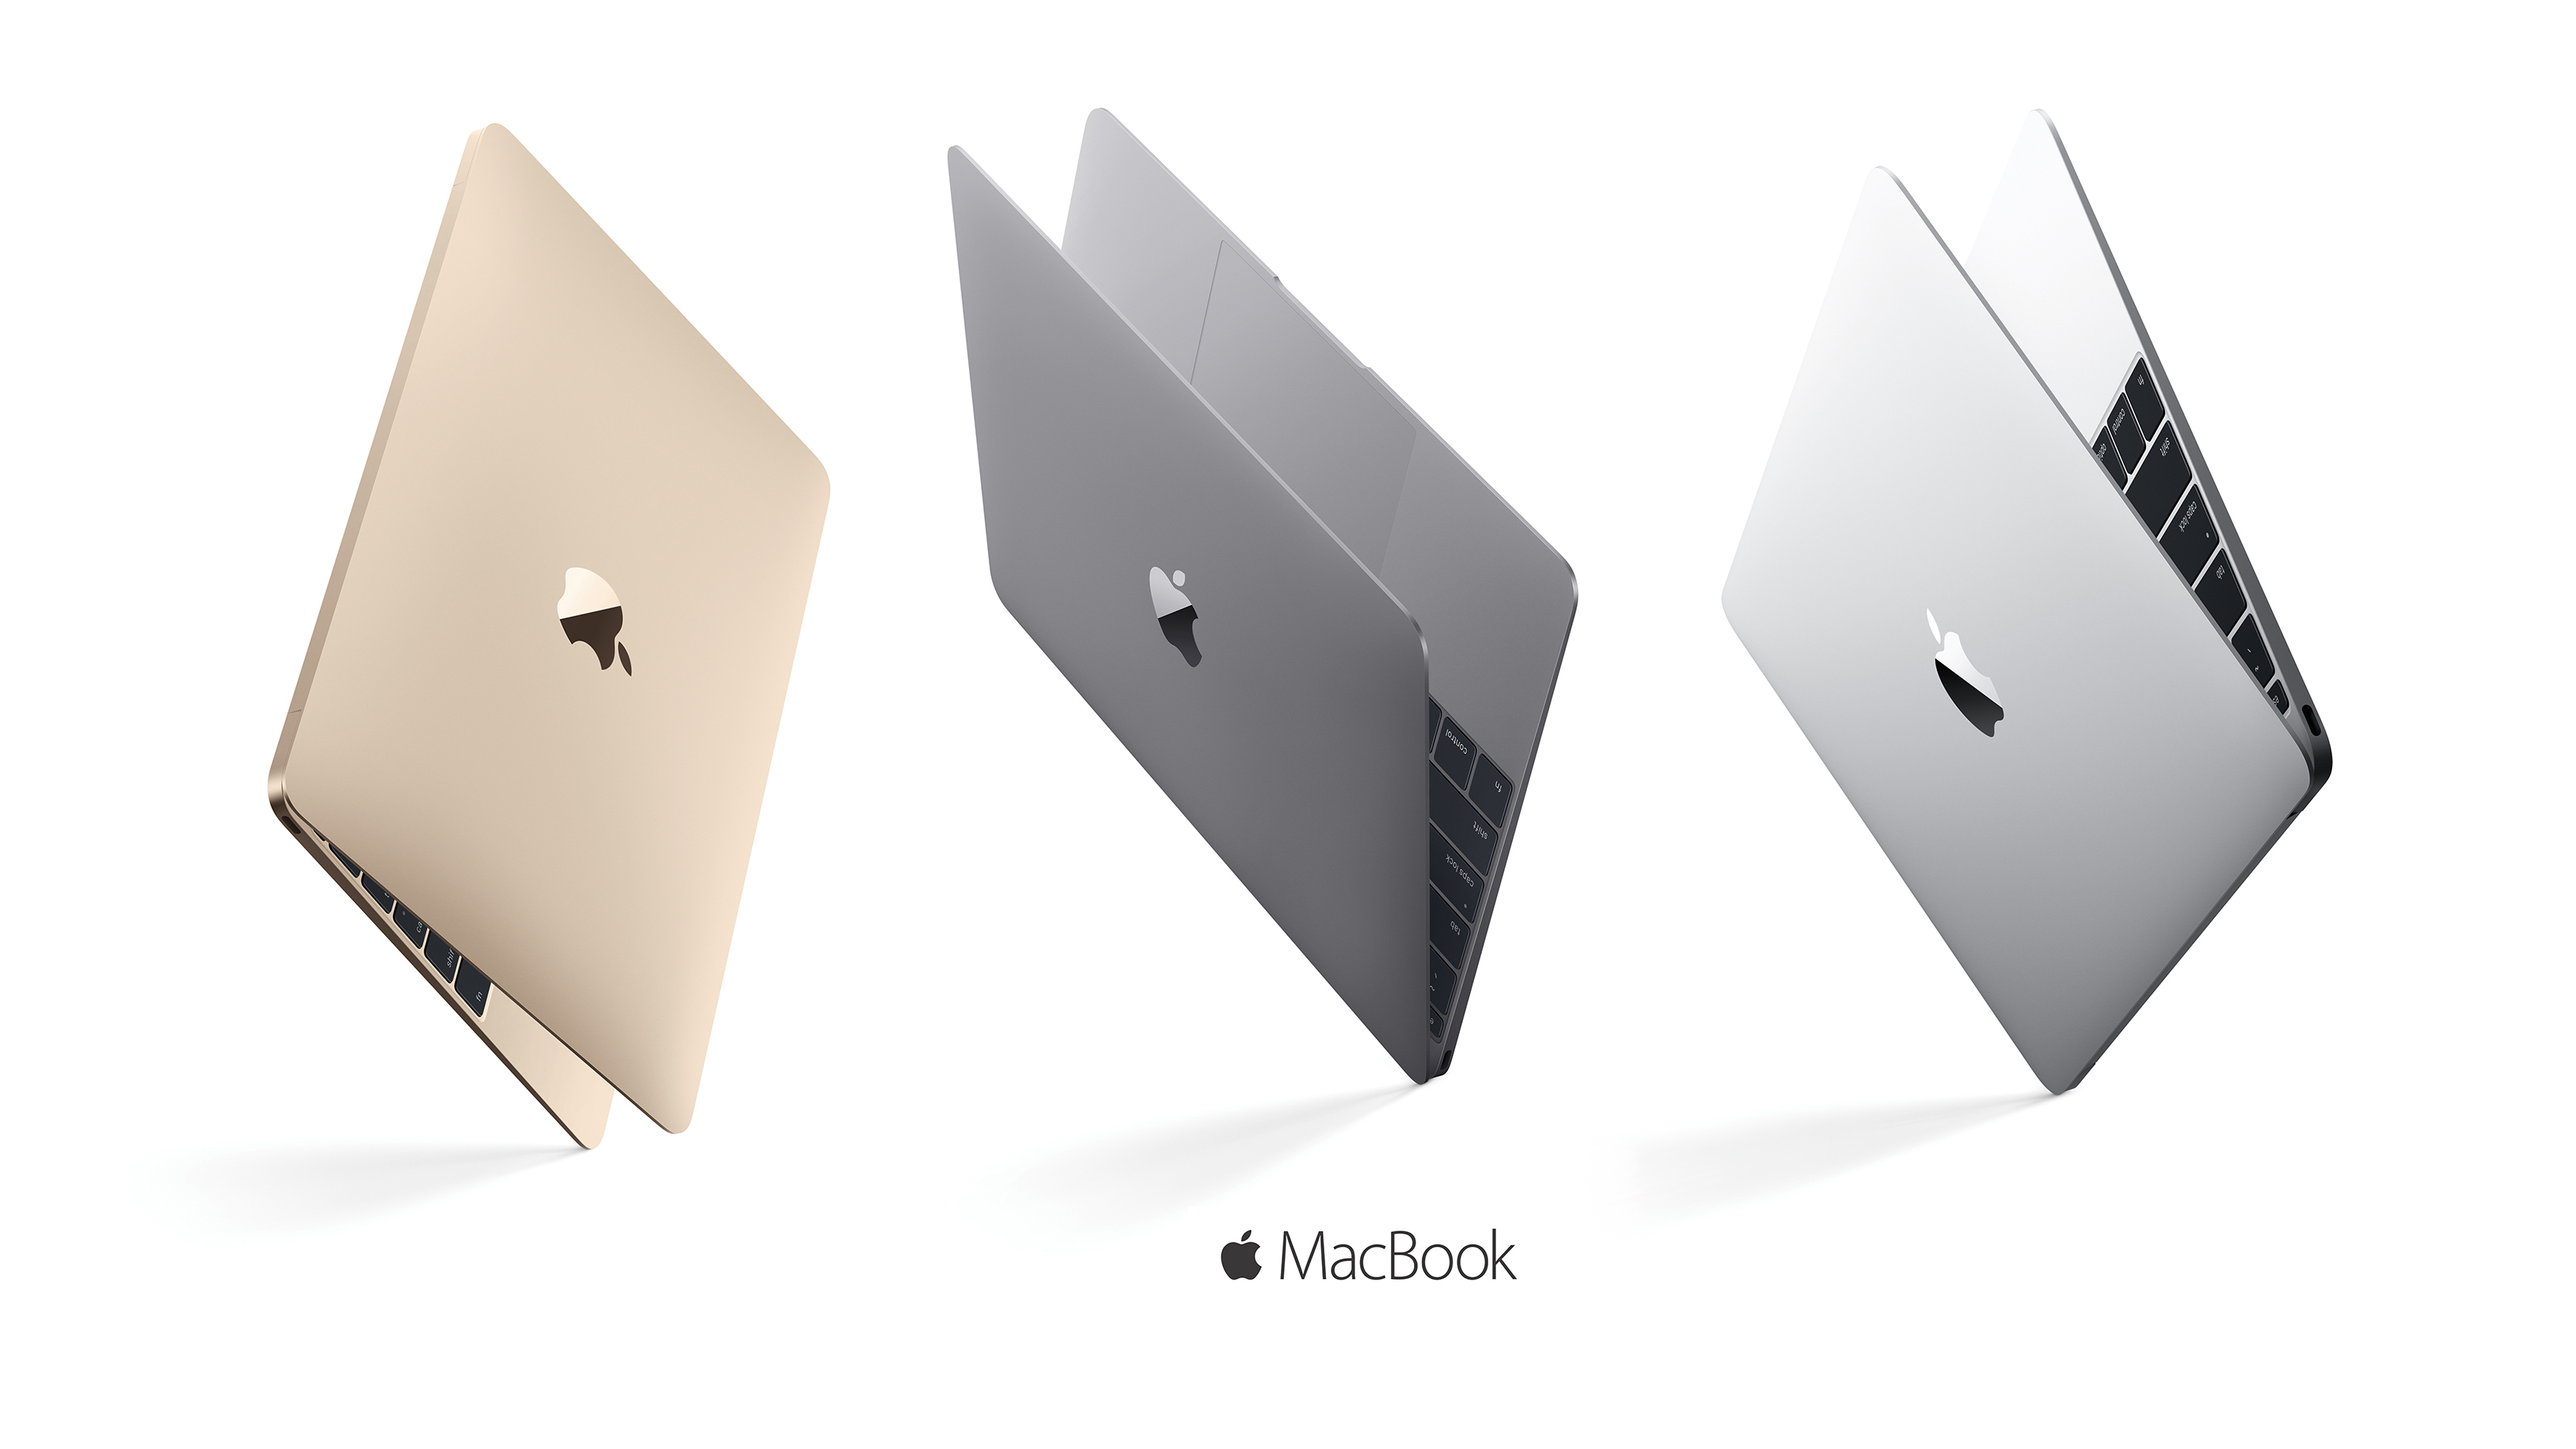 Today's Gold Box has up to $600 off various MacBooks from $1,000 (Cert. Refurb)